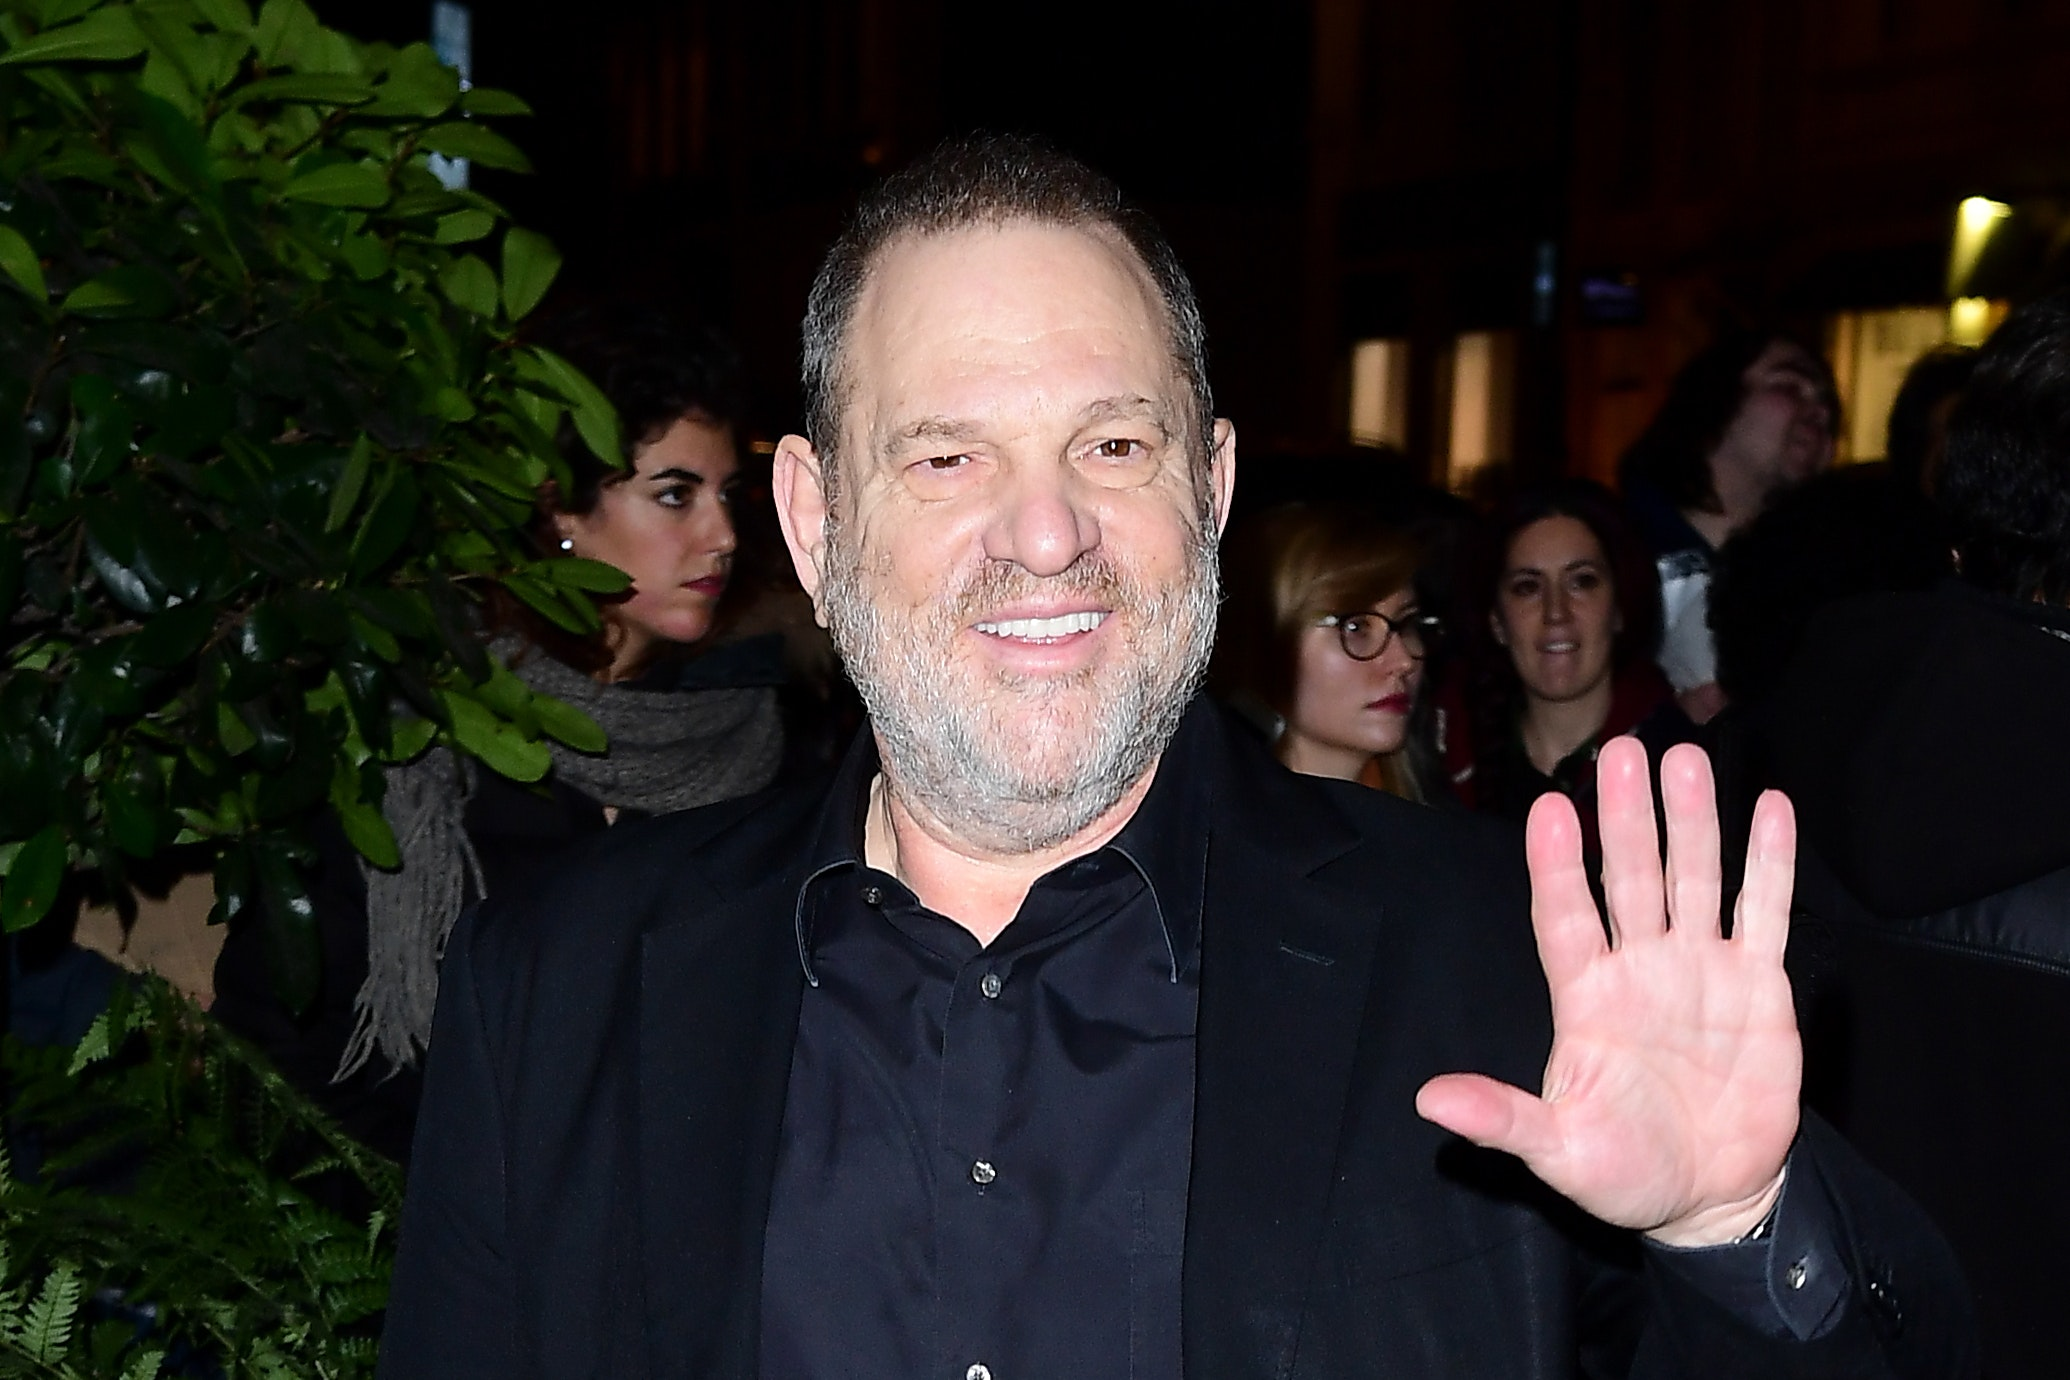 Harvey Weinstein has been accused of sexual harassment and assault by around 100 women (Ian West/PA)